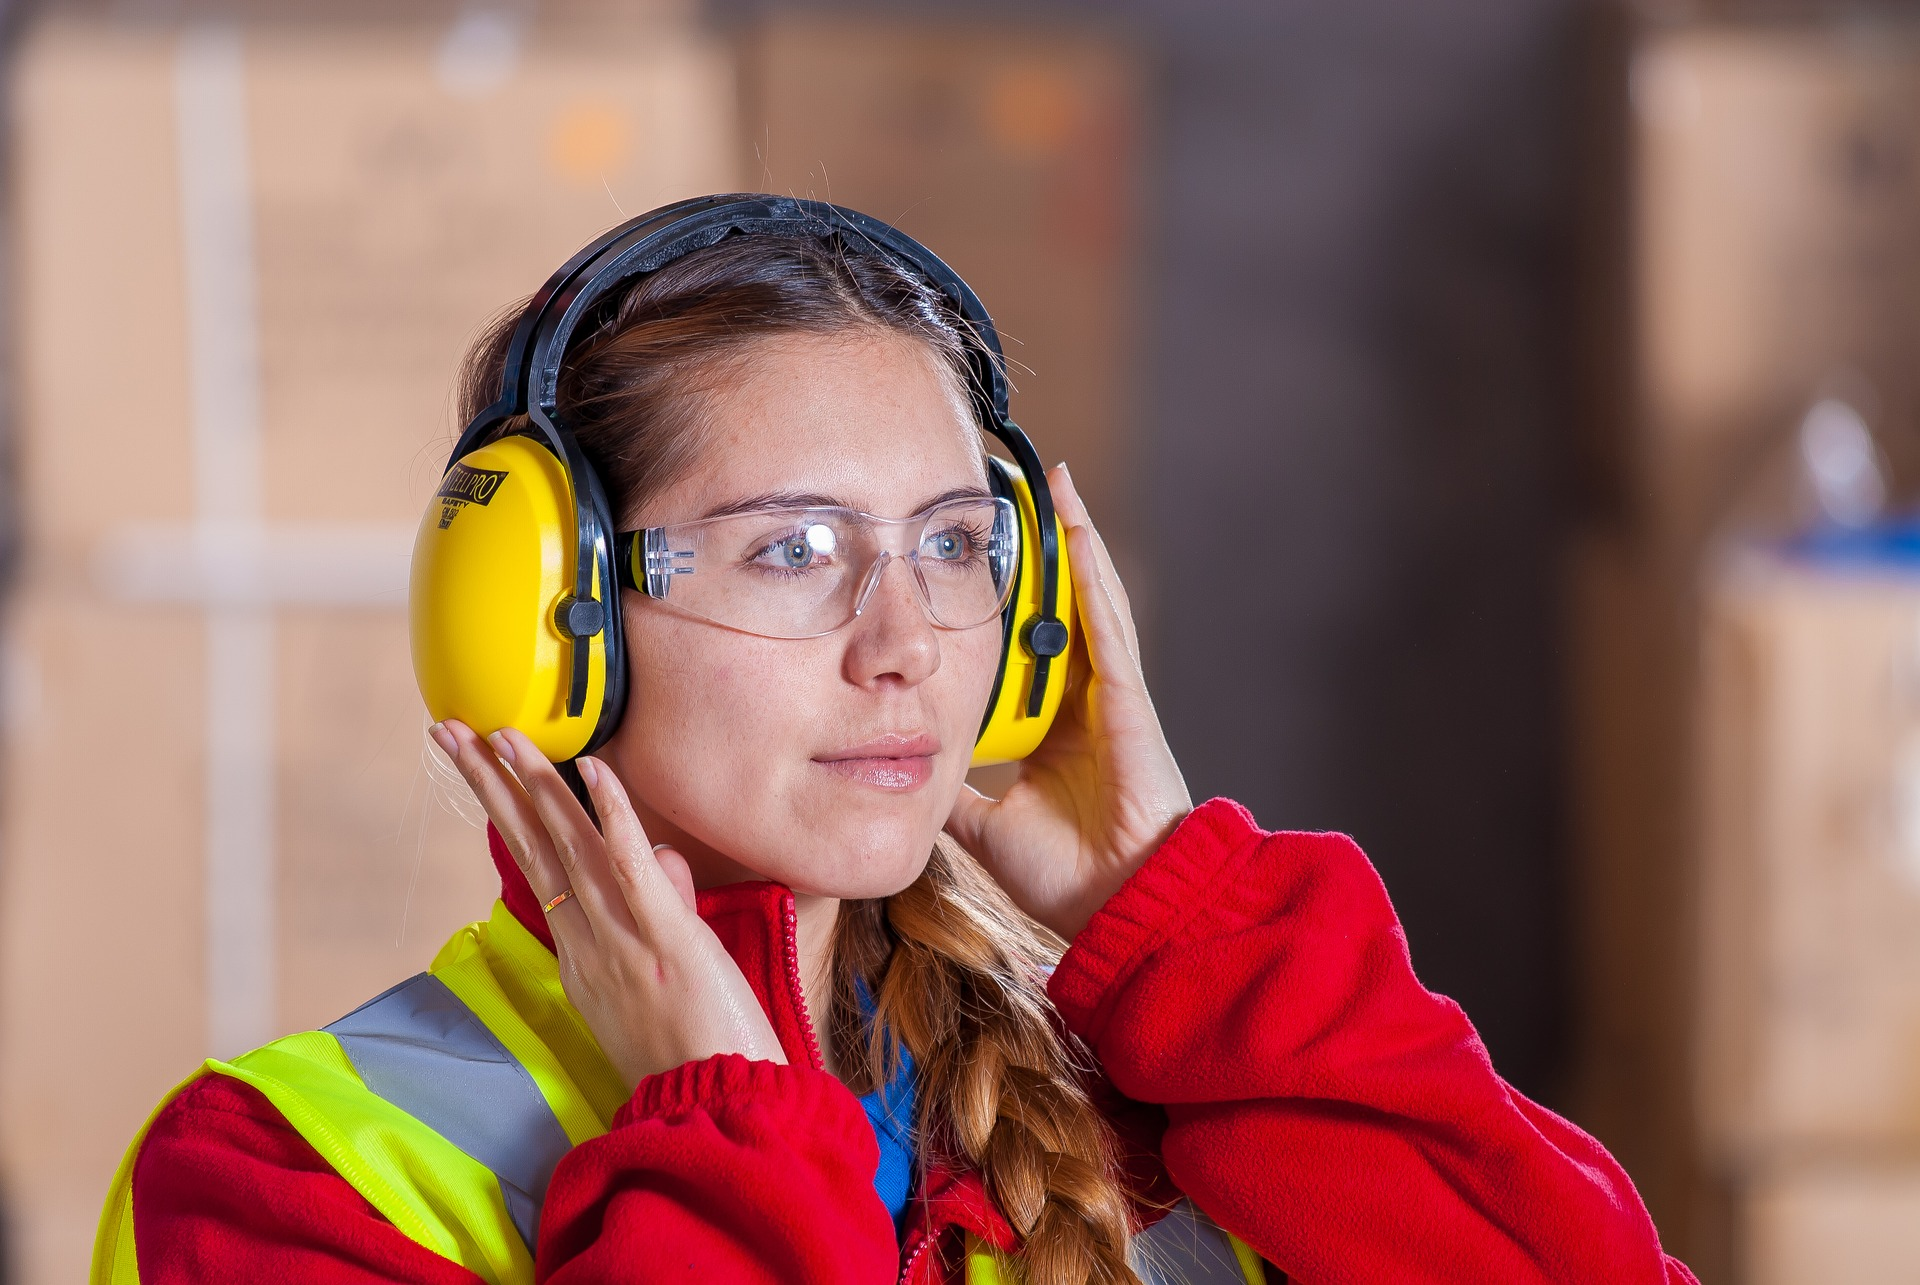 warehouse employee wearing ear protection against loud noise